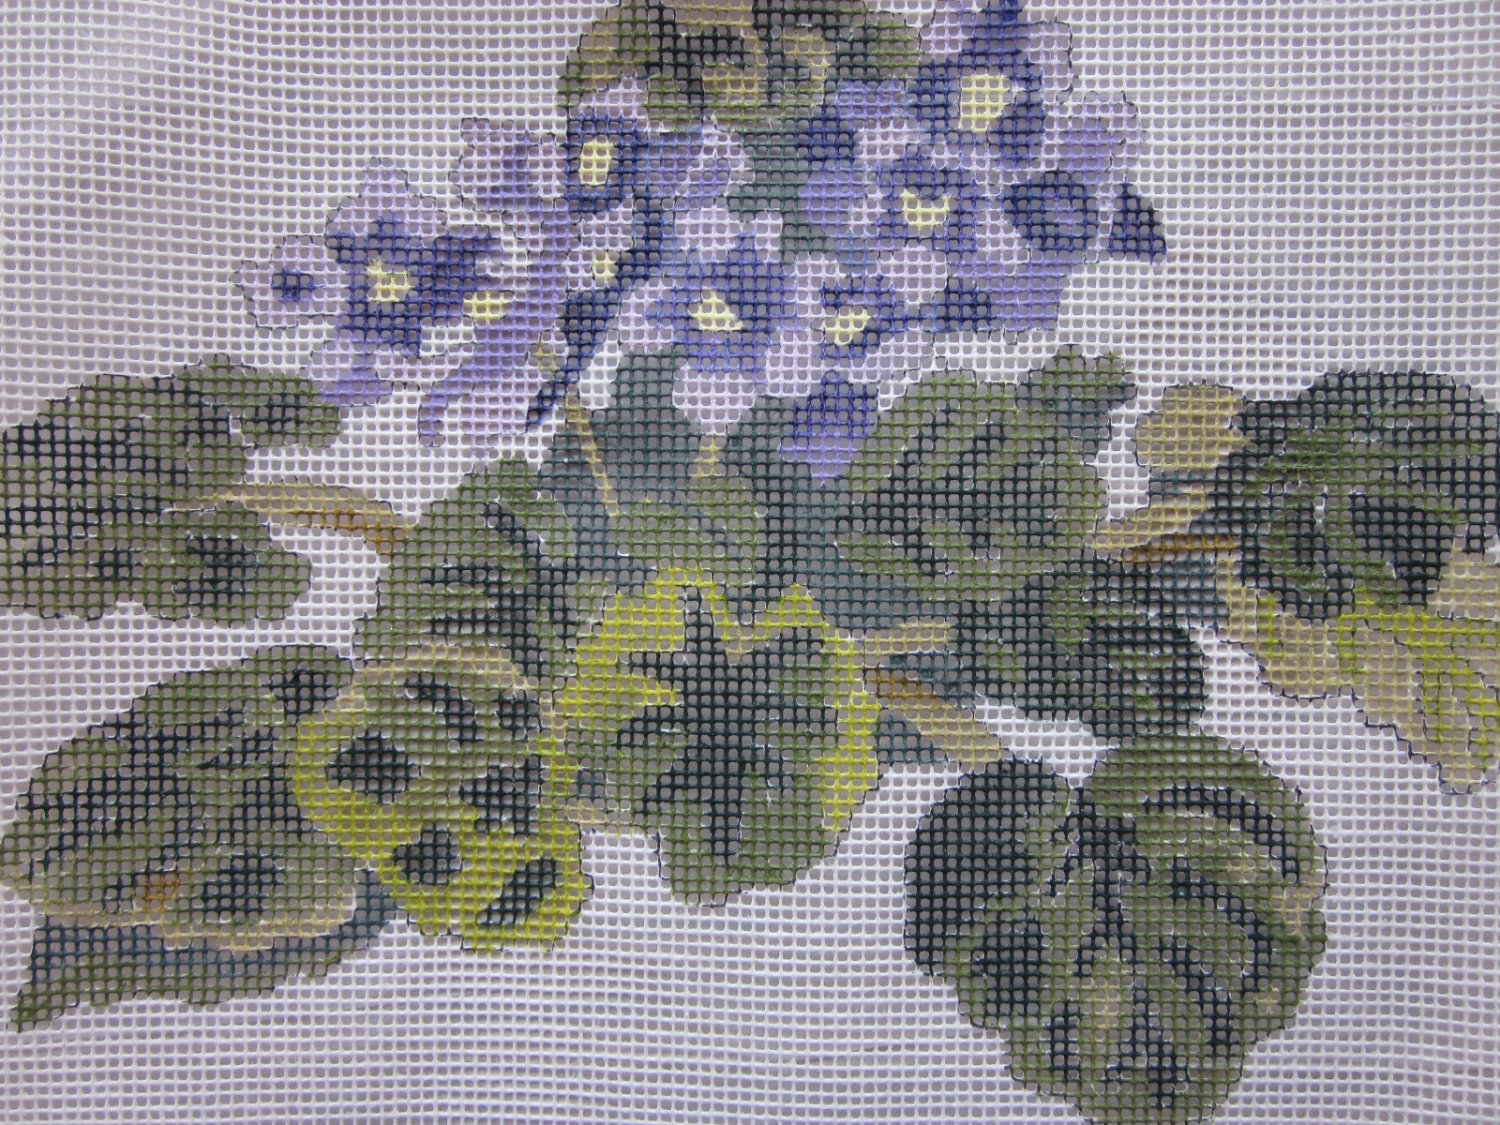 HP Floral Needlepoint Canvas Bunch of Violets Free Ship